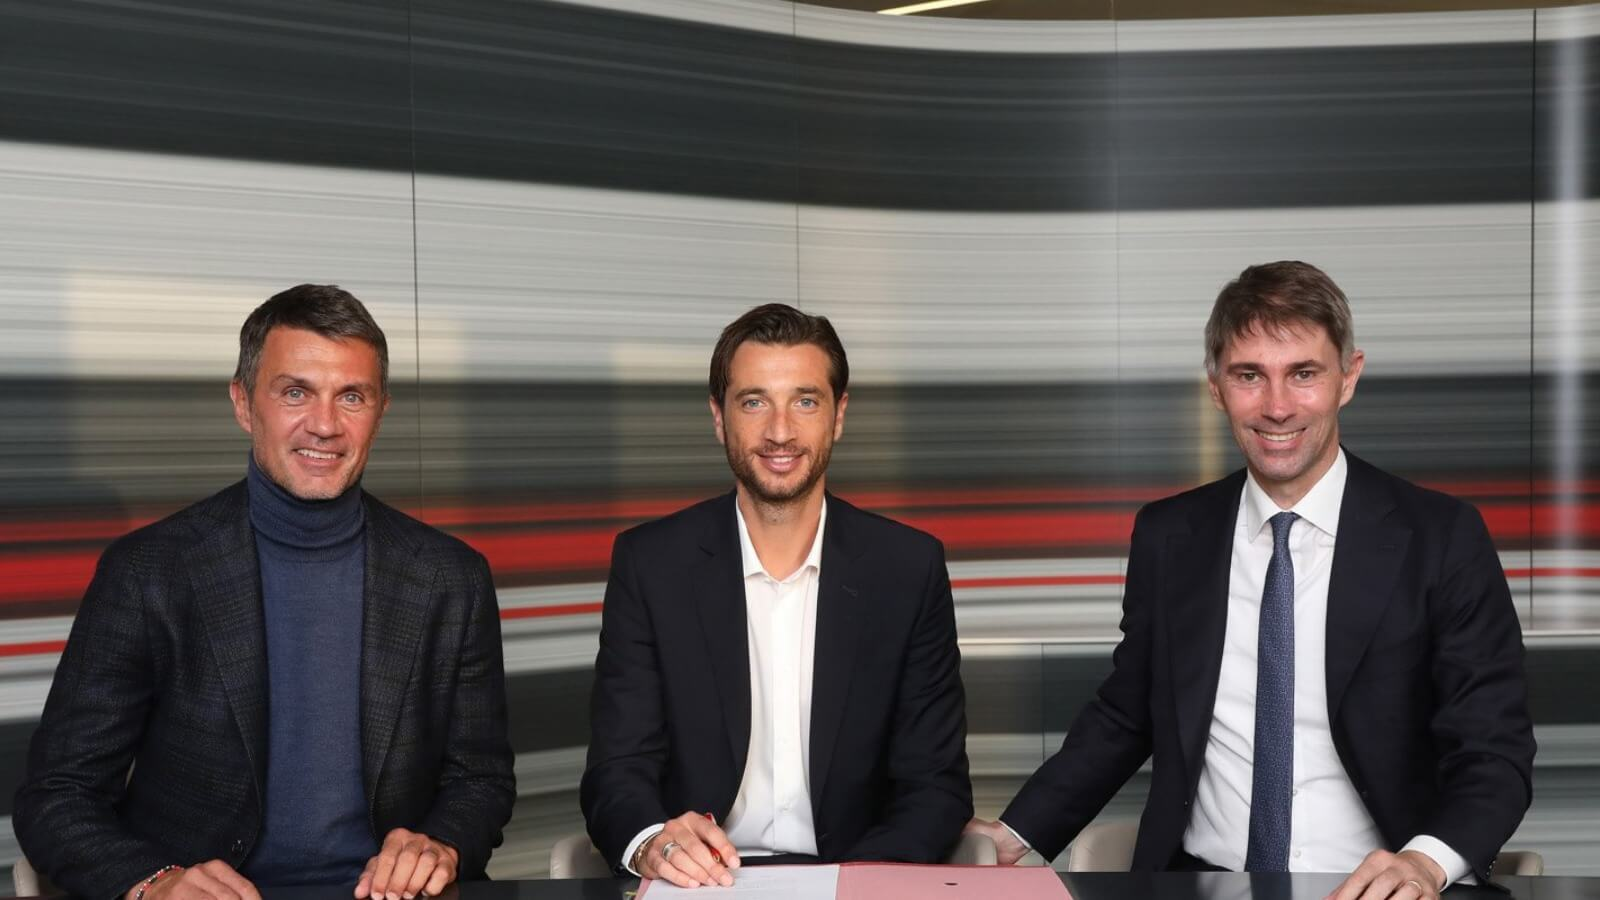 Milan signed Mirante as a substitute to Maignan